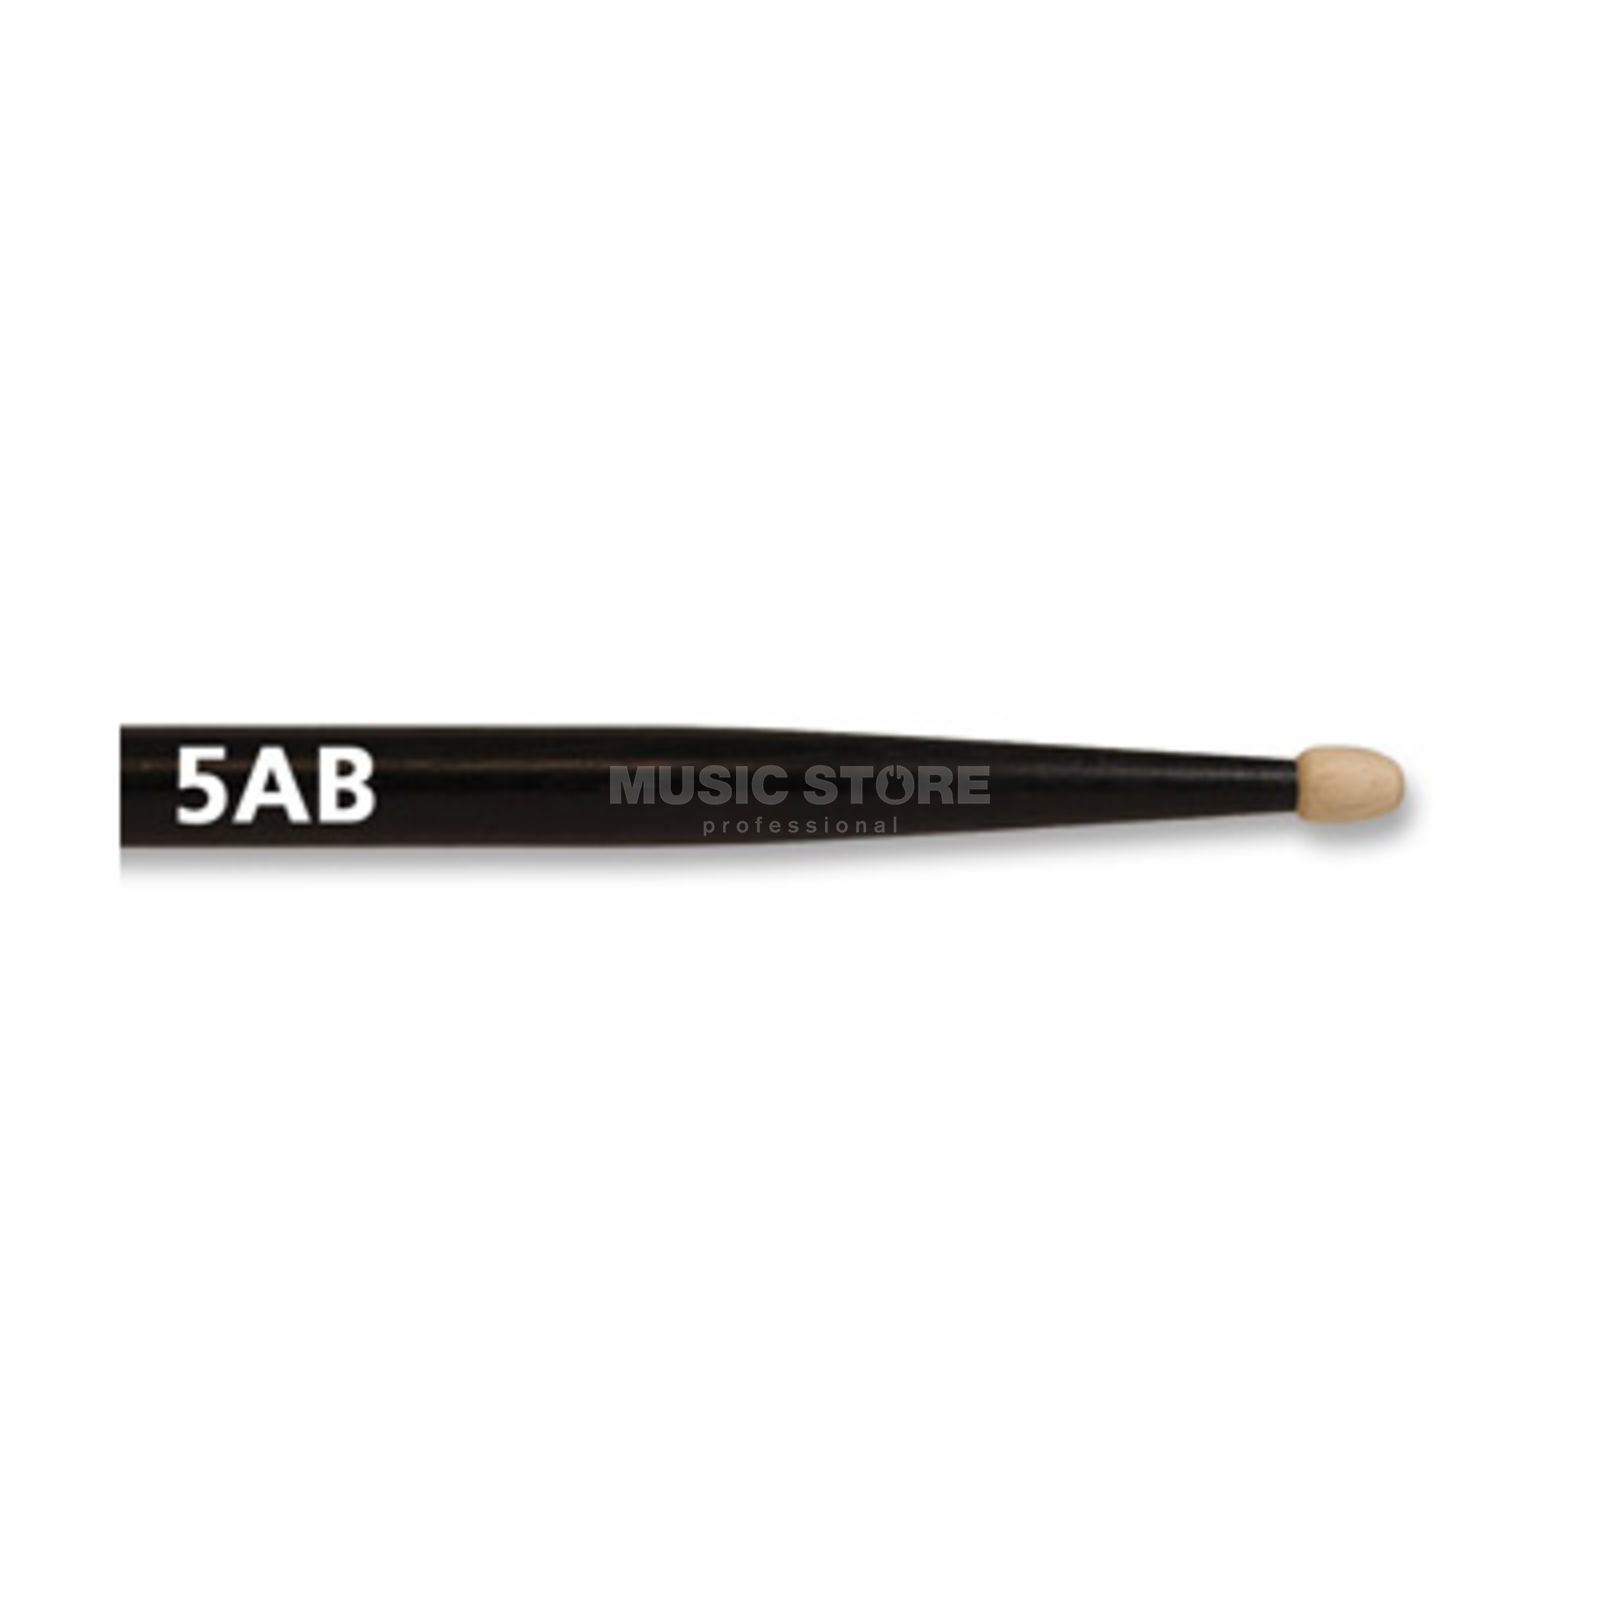 Vic-Firth 5AB Sticks, Black American Classic, Wood Tip Produktbild